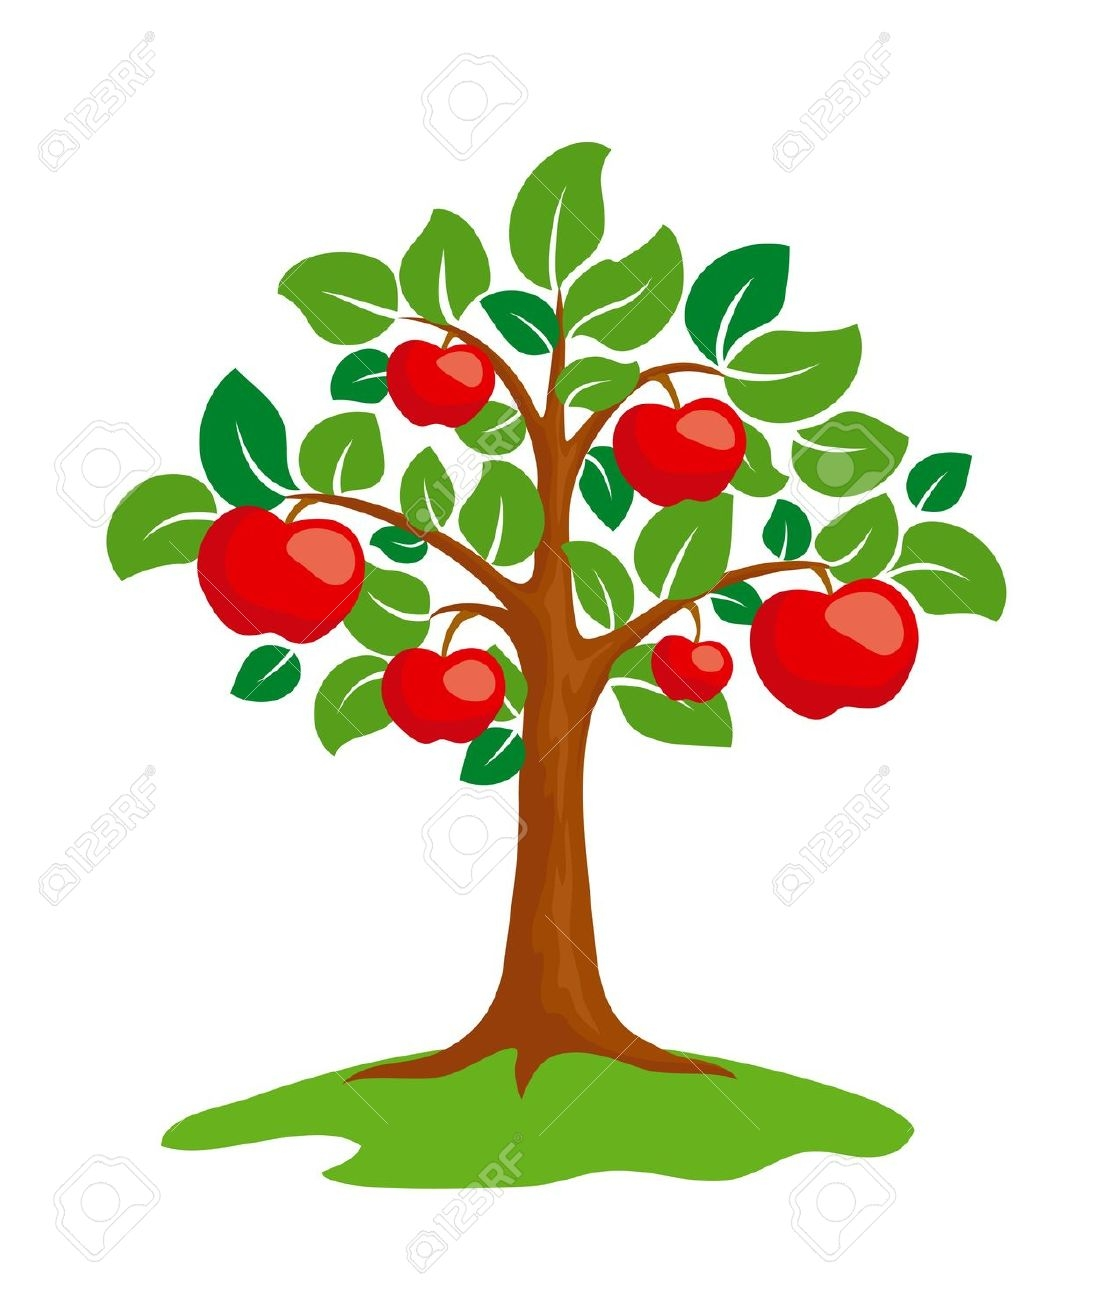 Apple tree cycle clipart freeuse Free clipart apple tree - ClipartFest freeuse